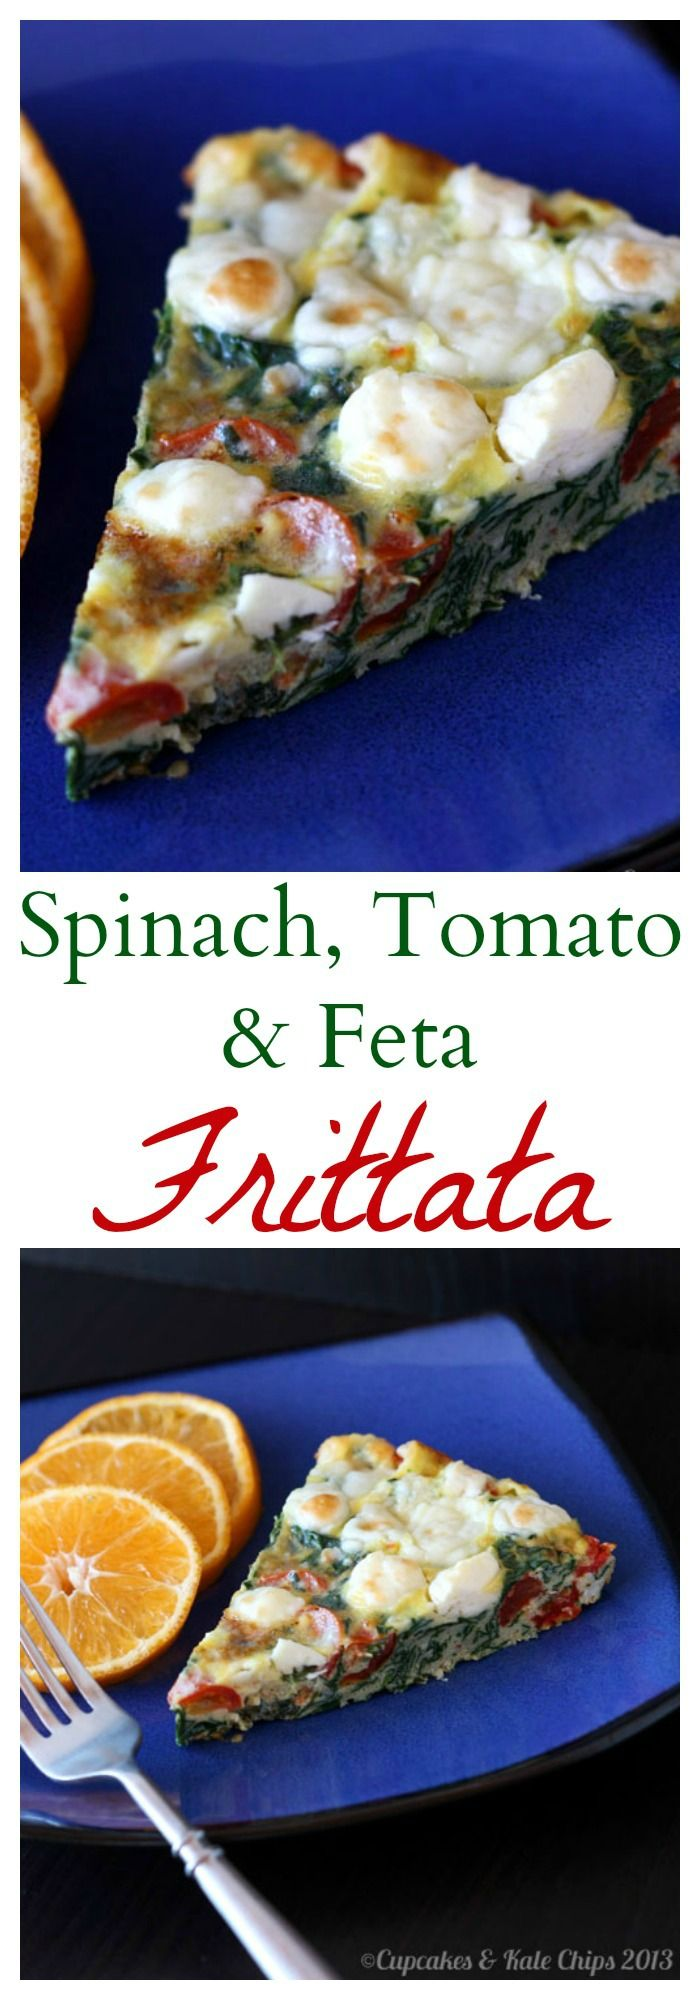 Spinach, Tomato & Feta Frittata is a simple meatless meal for breakfast, brunch, or breakfast for dinner (aka brinner) | cupcakesandkalechips.com | gluten free, vegetarian